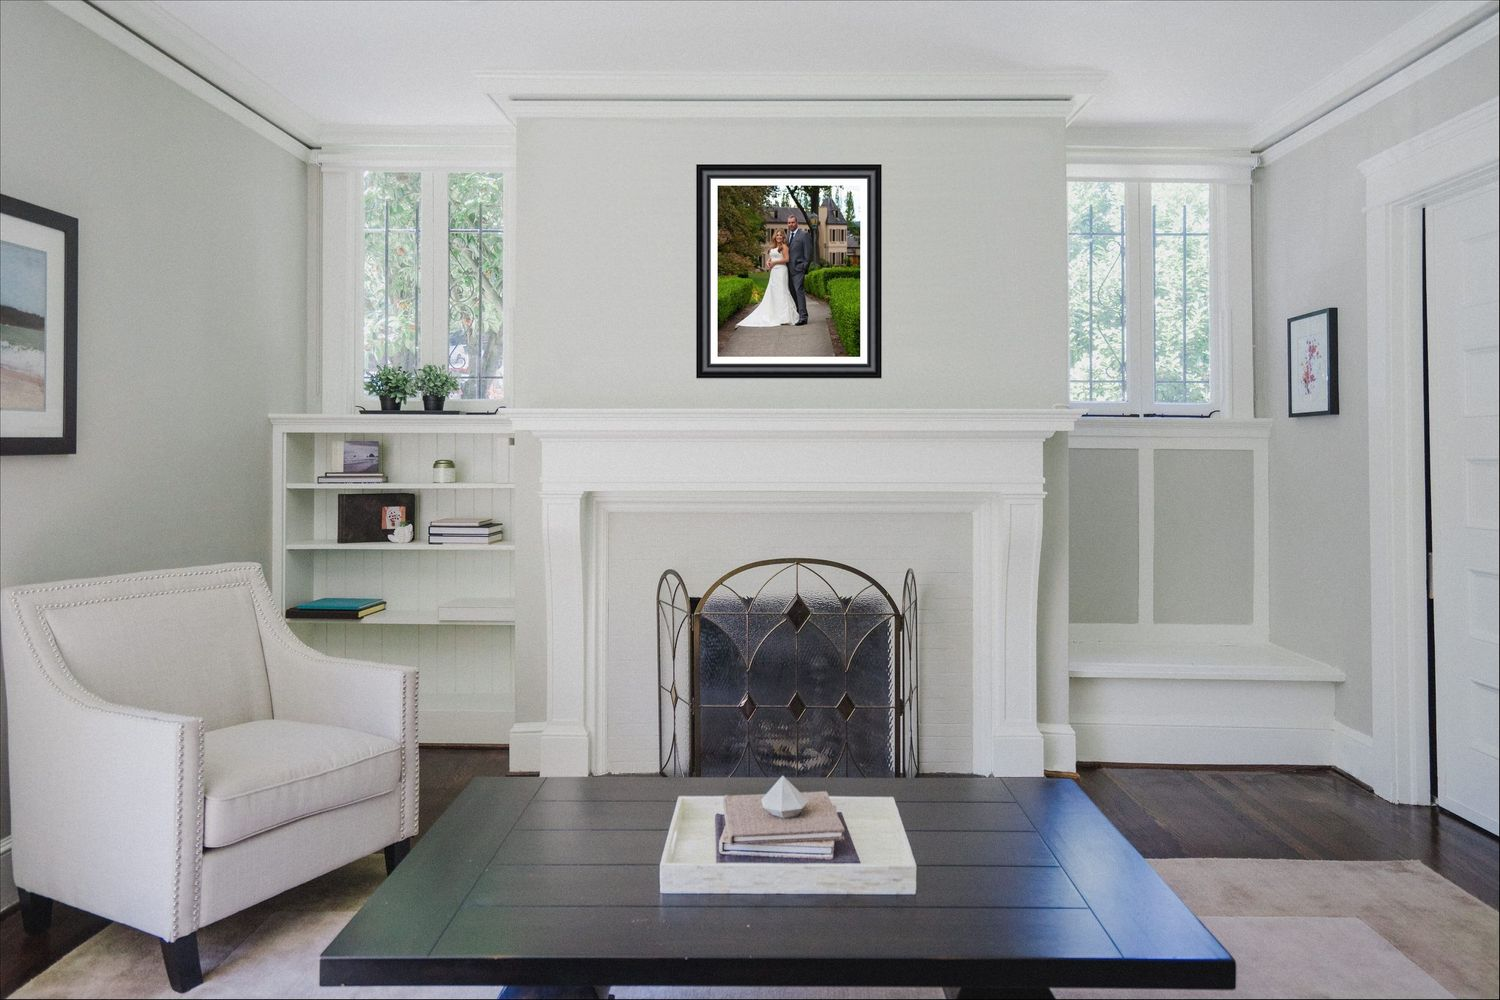 image of room with framed portrait from jackie phairow photograpy